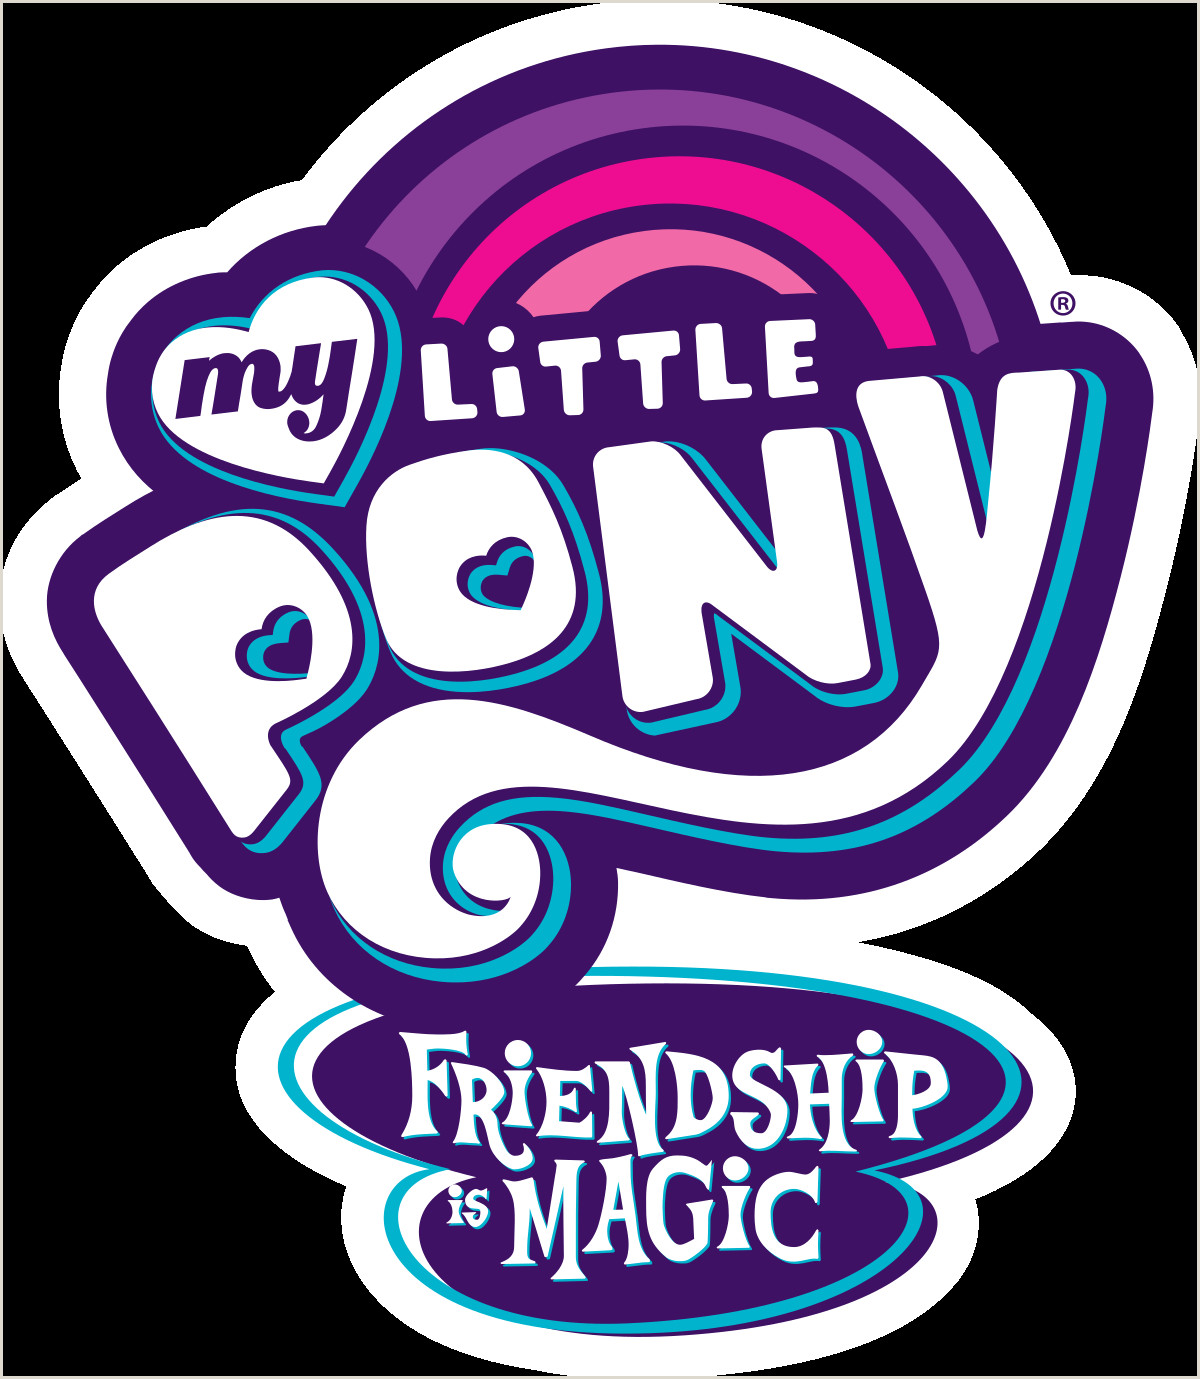 Music Business Card Ideas My Little Pony Friendship Is Magic